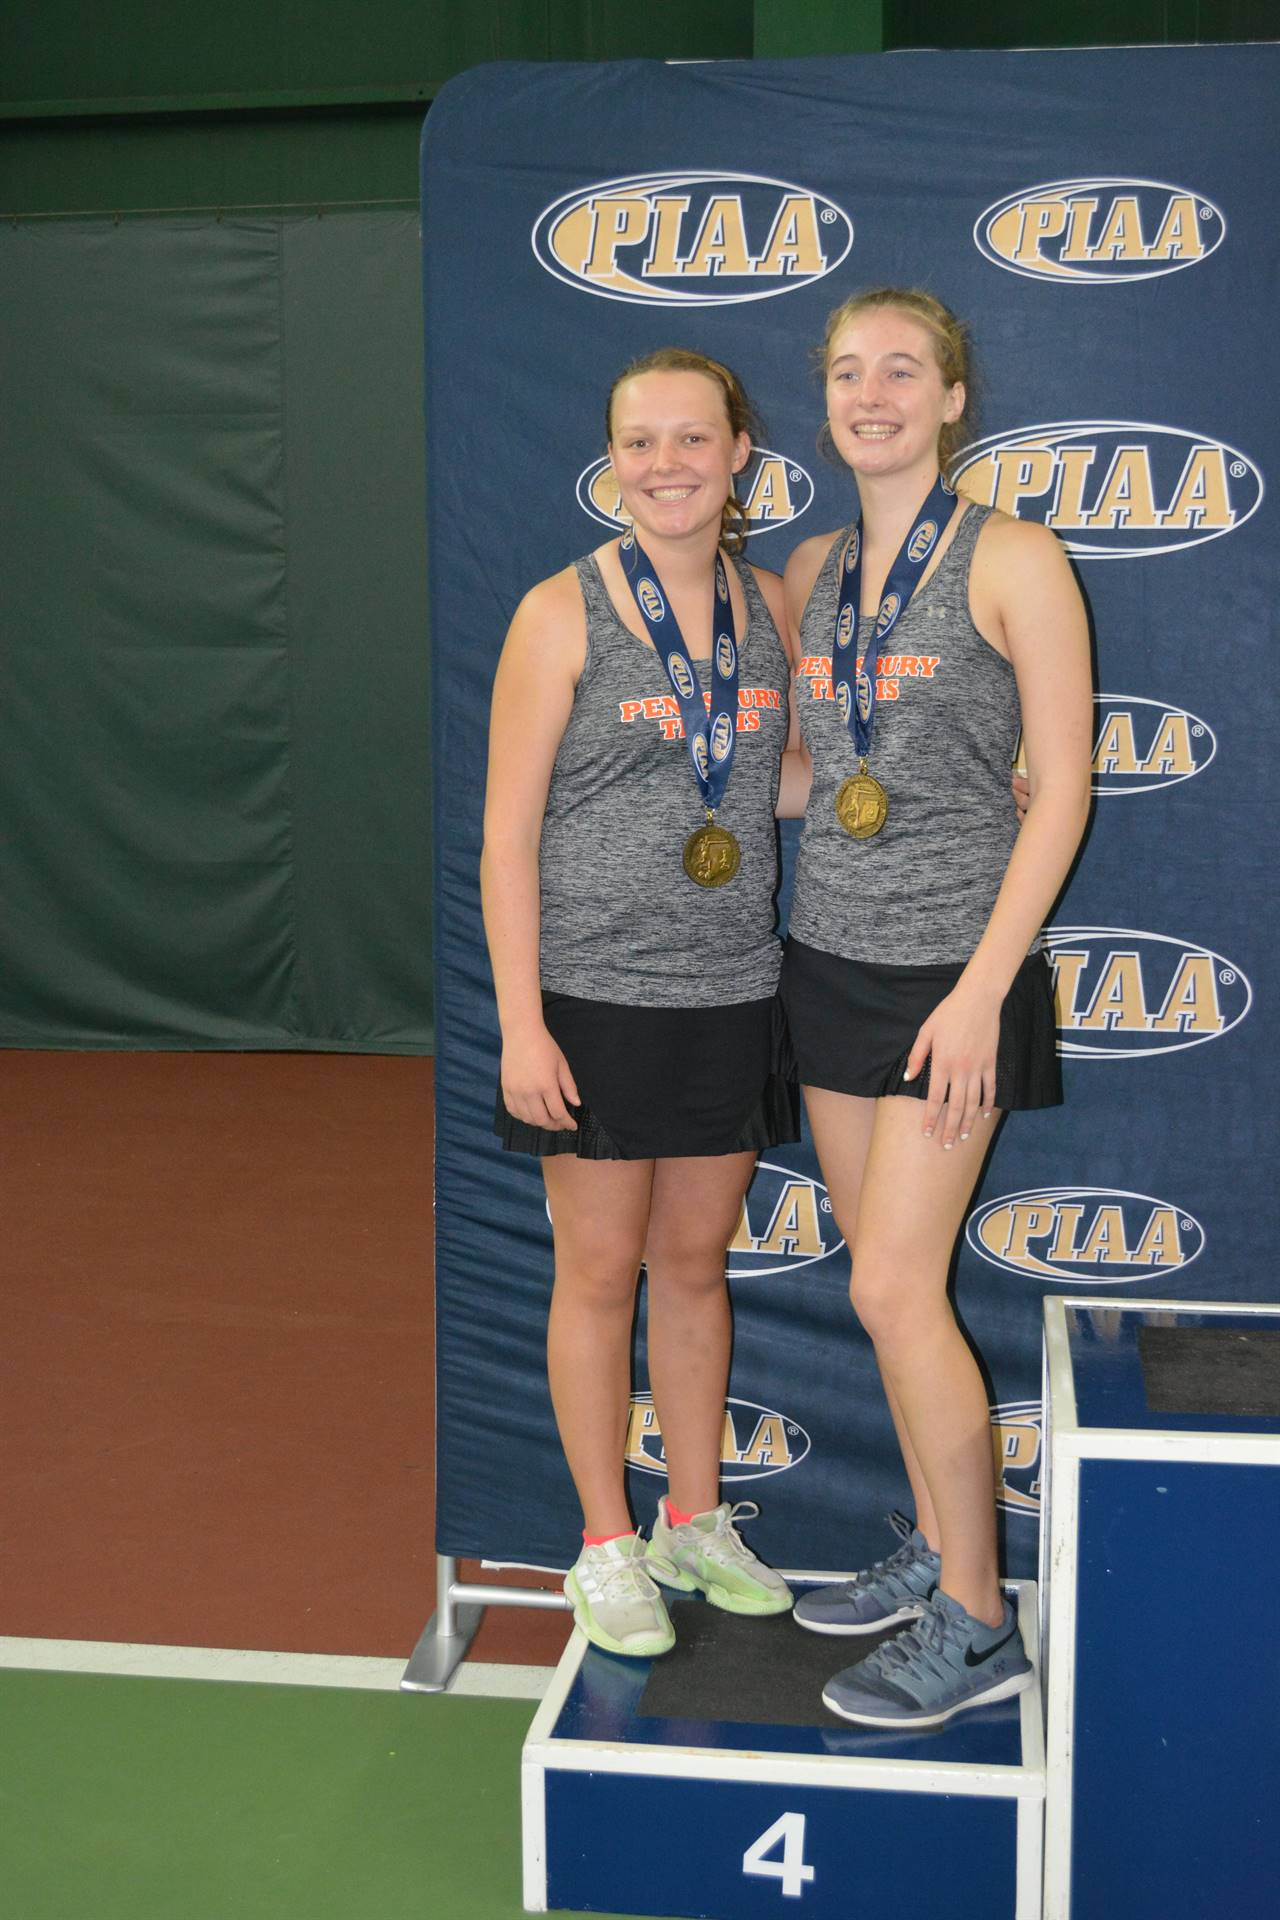 2019 PIAA Tennis Doubles State Champions